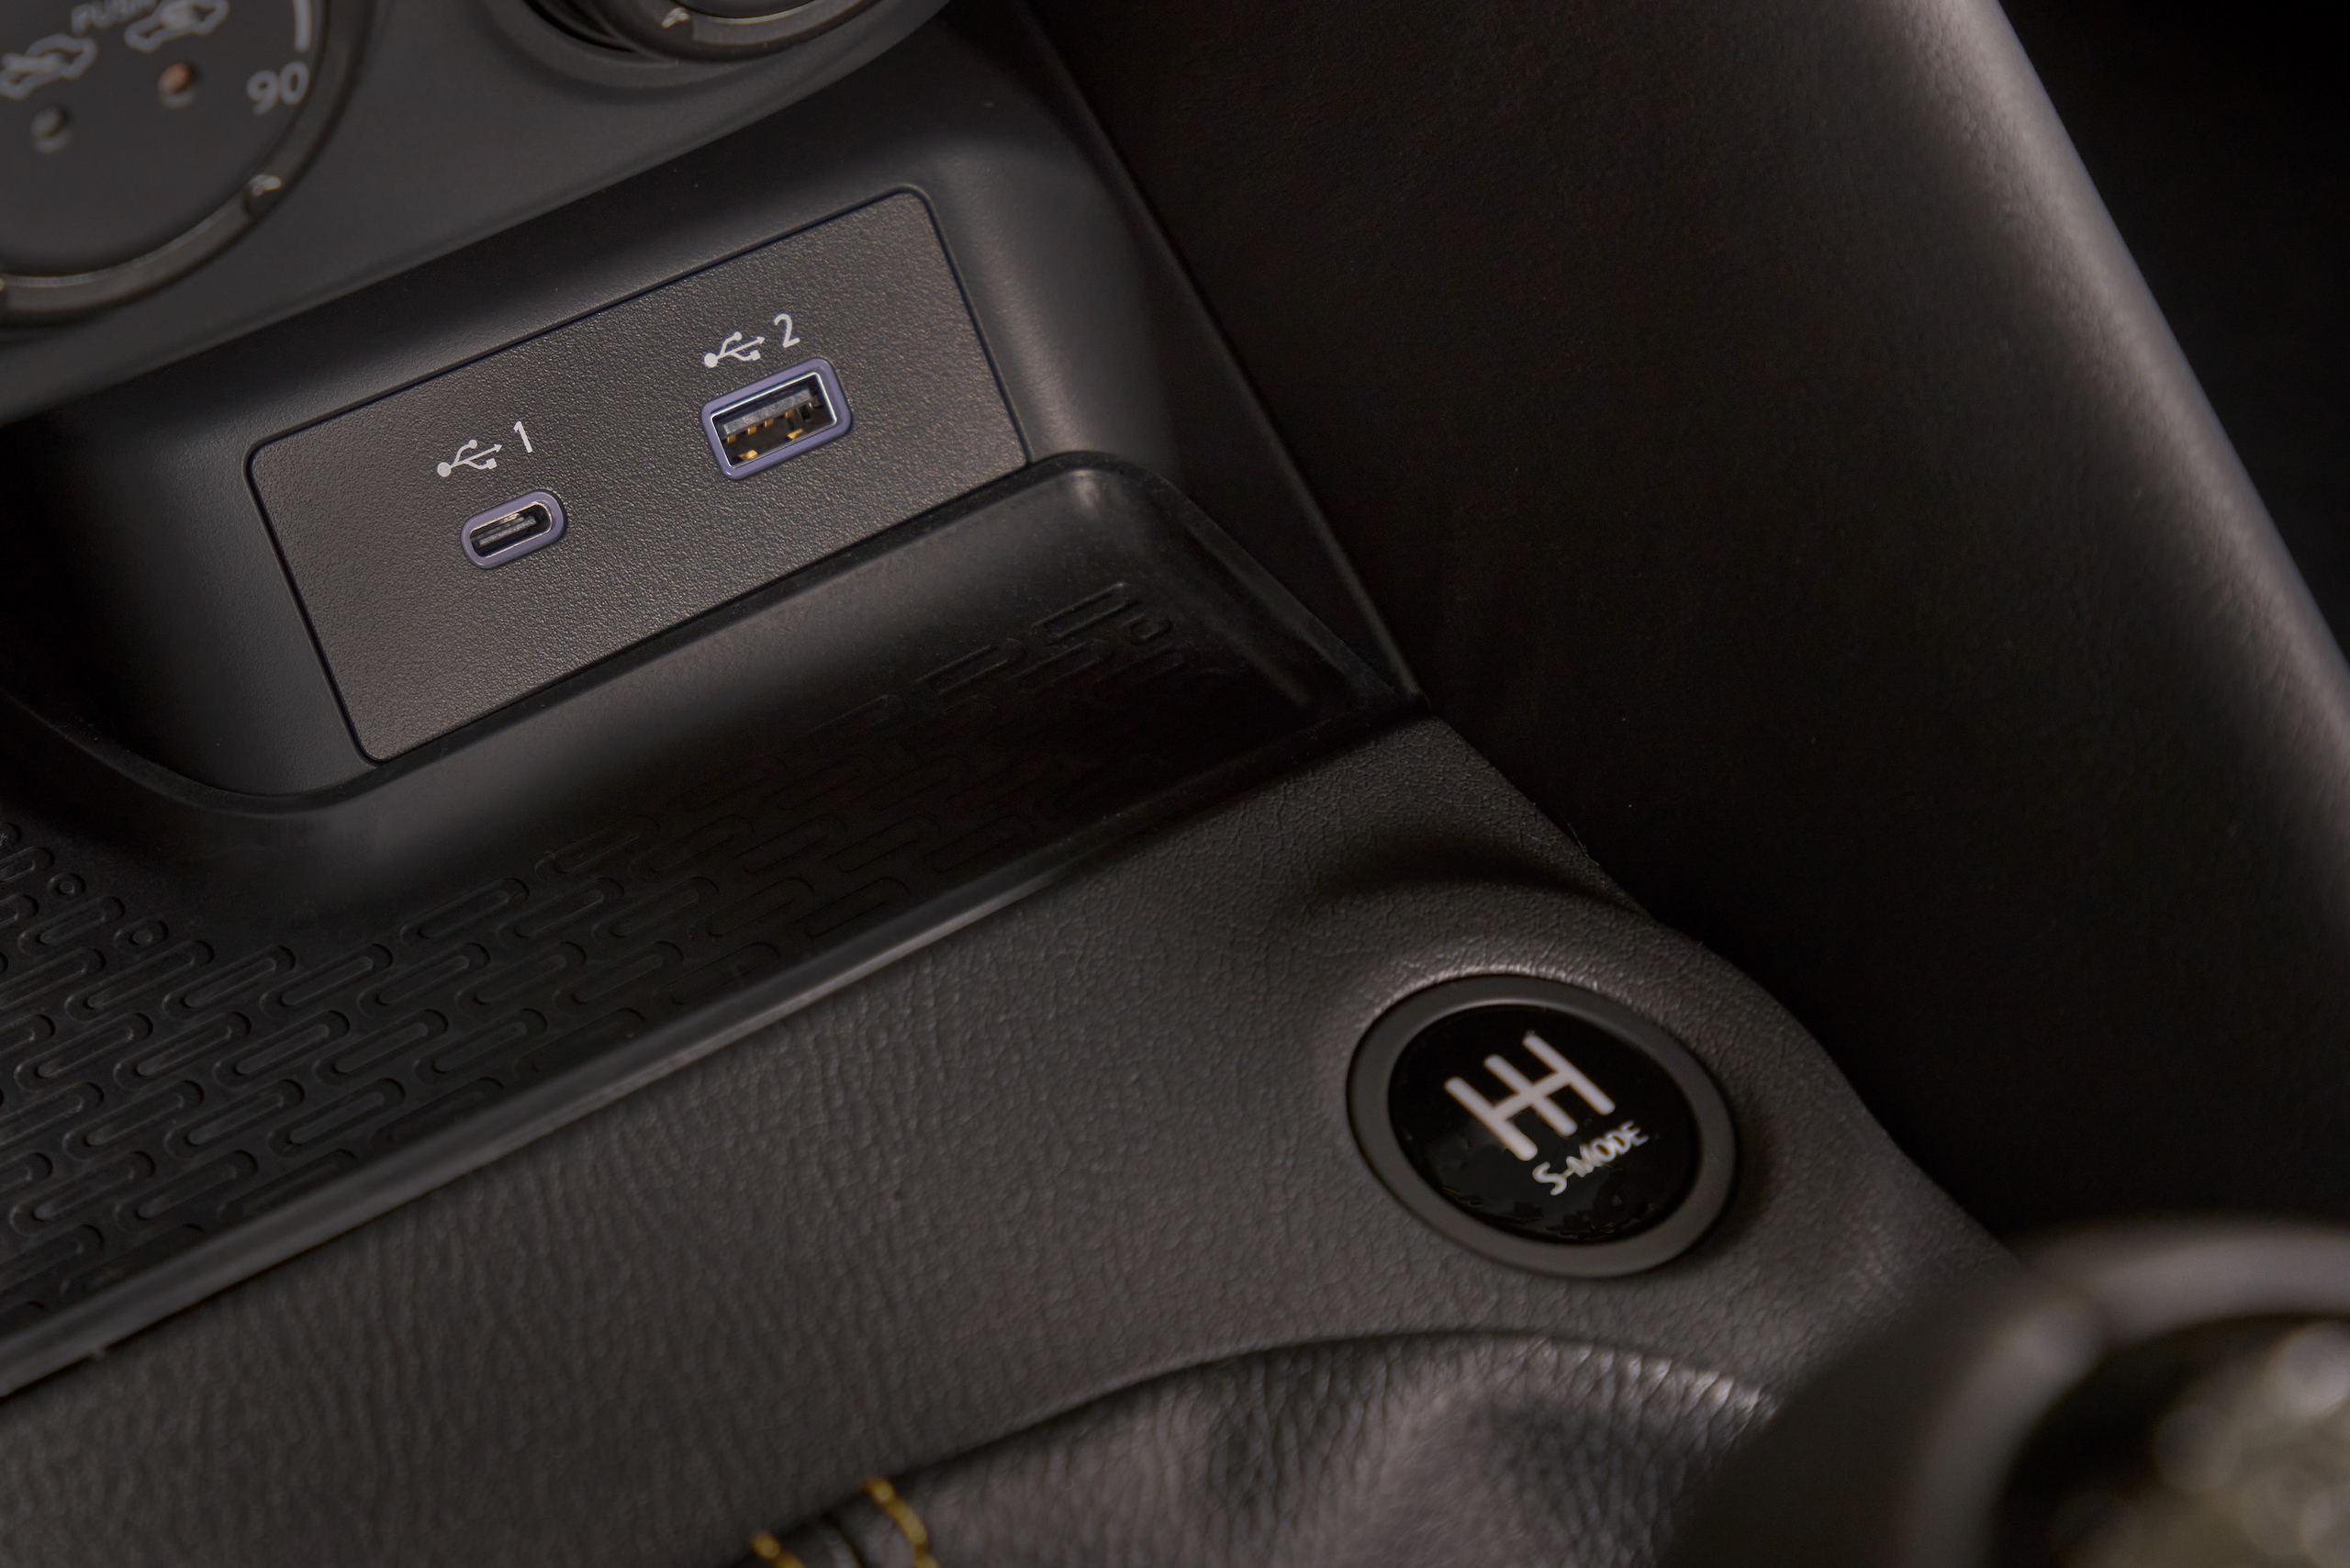 2023 Nissan Z interior ports and S mode